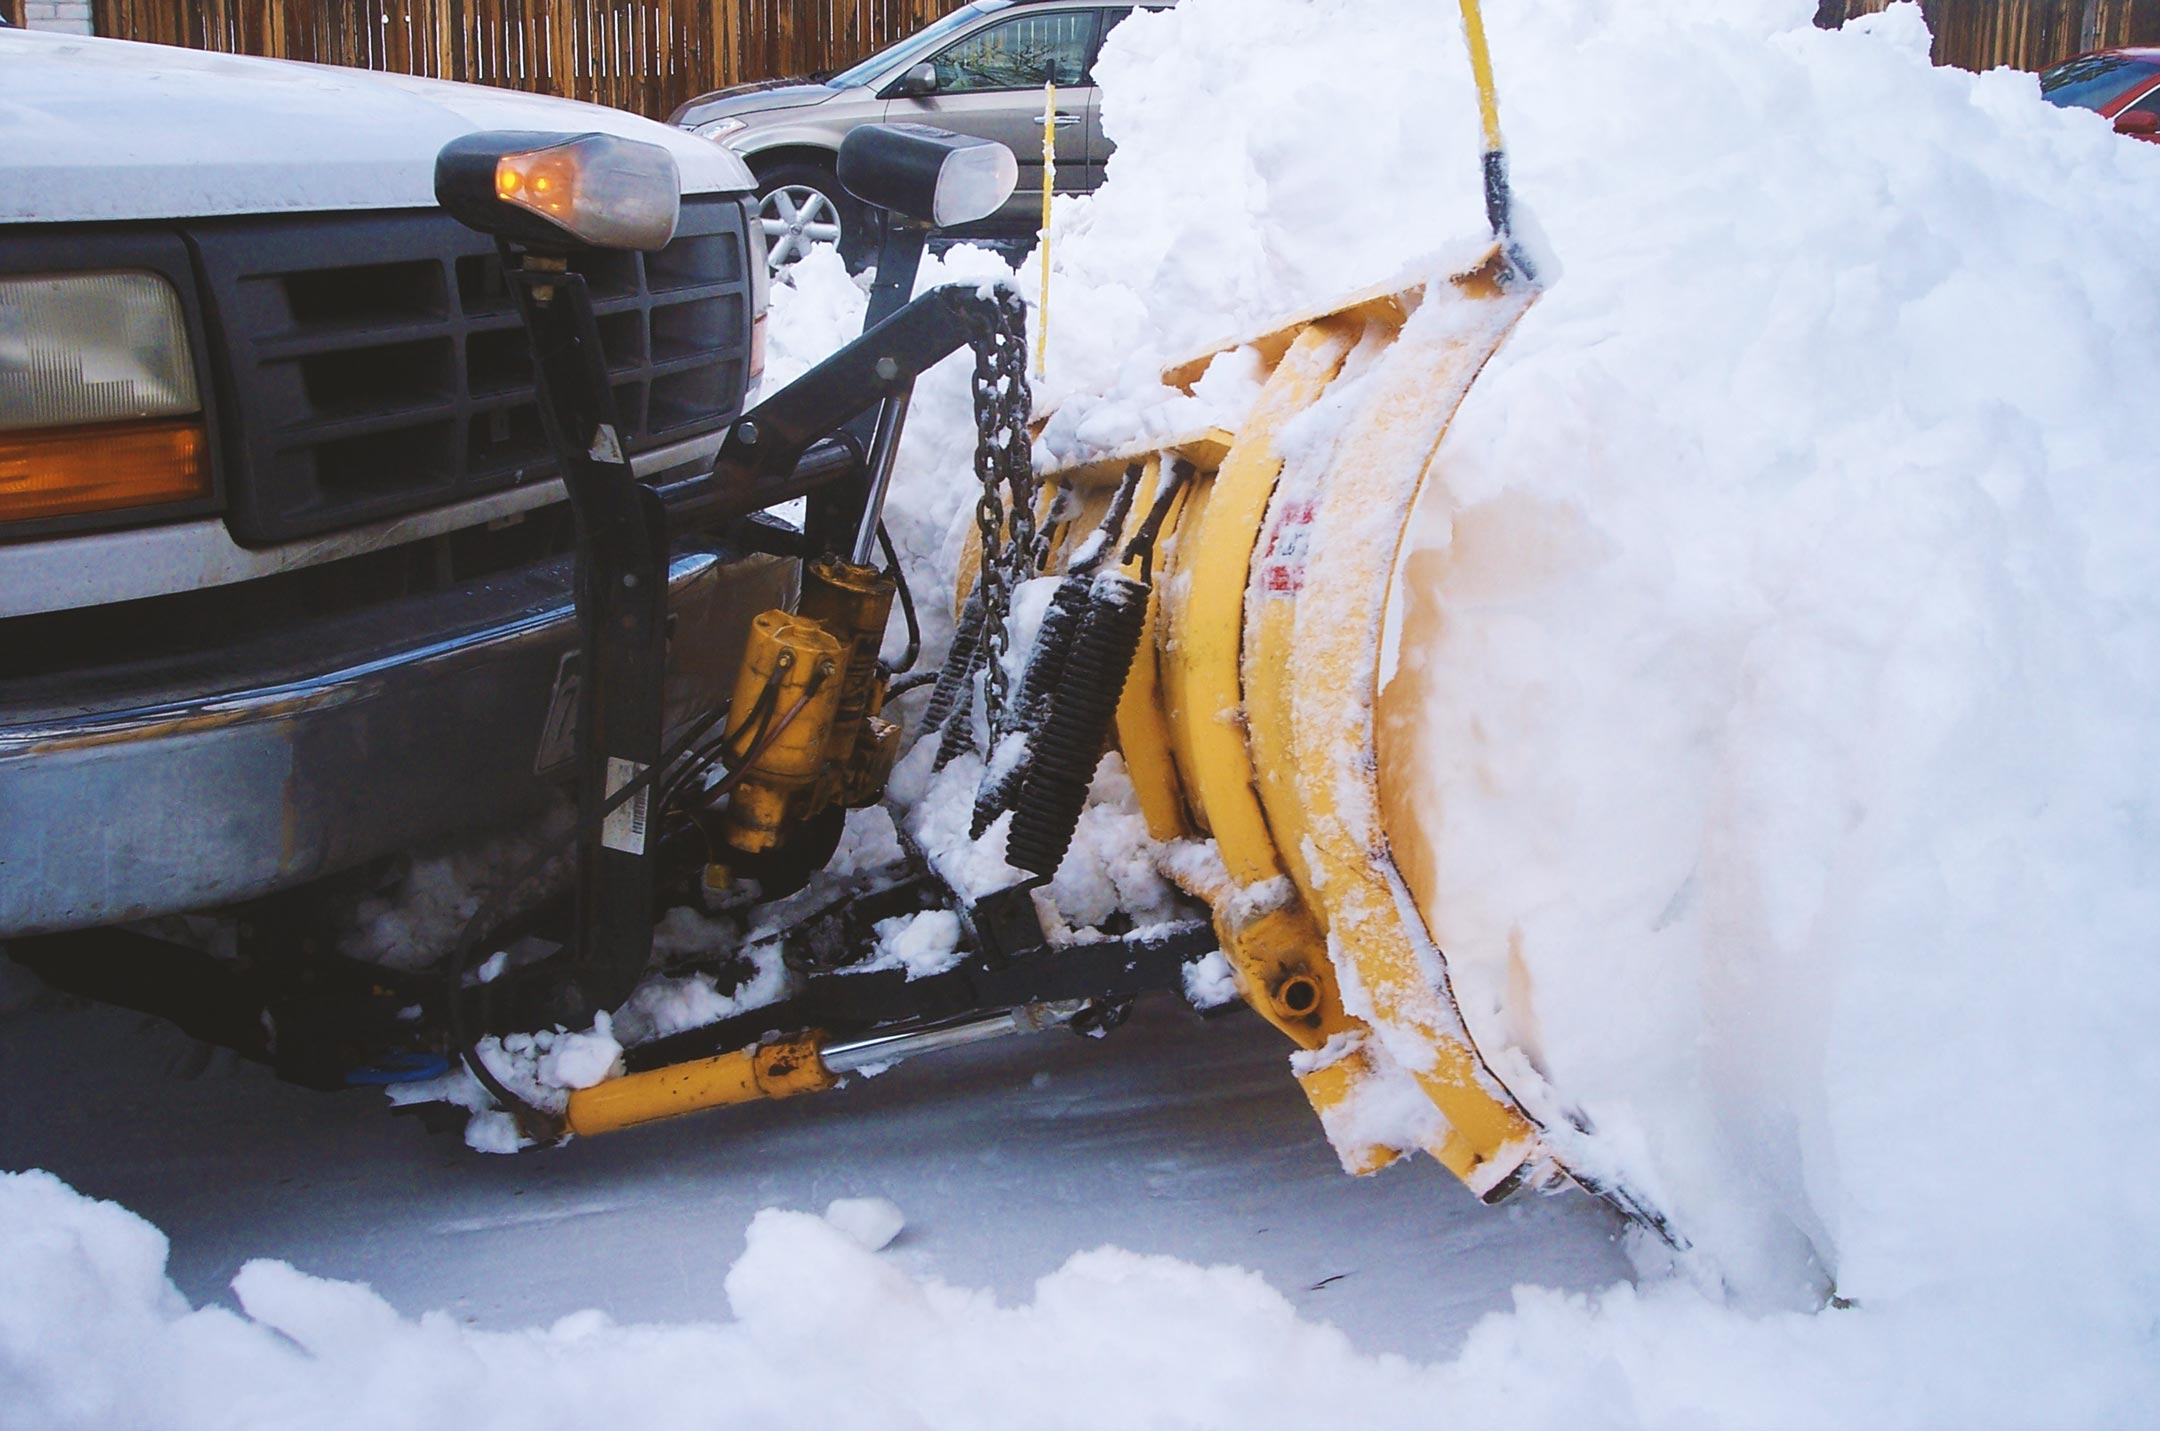 Close up of truck with snow plow attachment demonstrating Snow Removal with Plowing before Salting